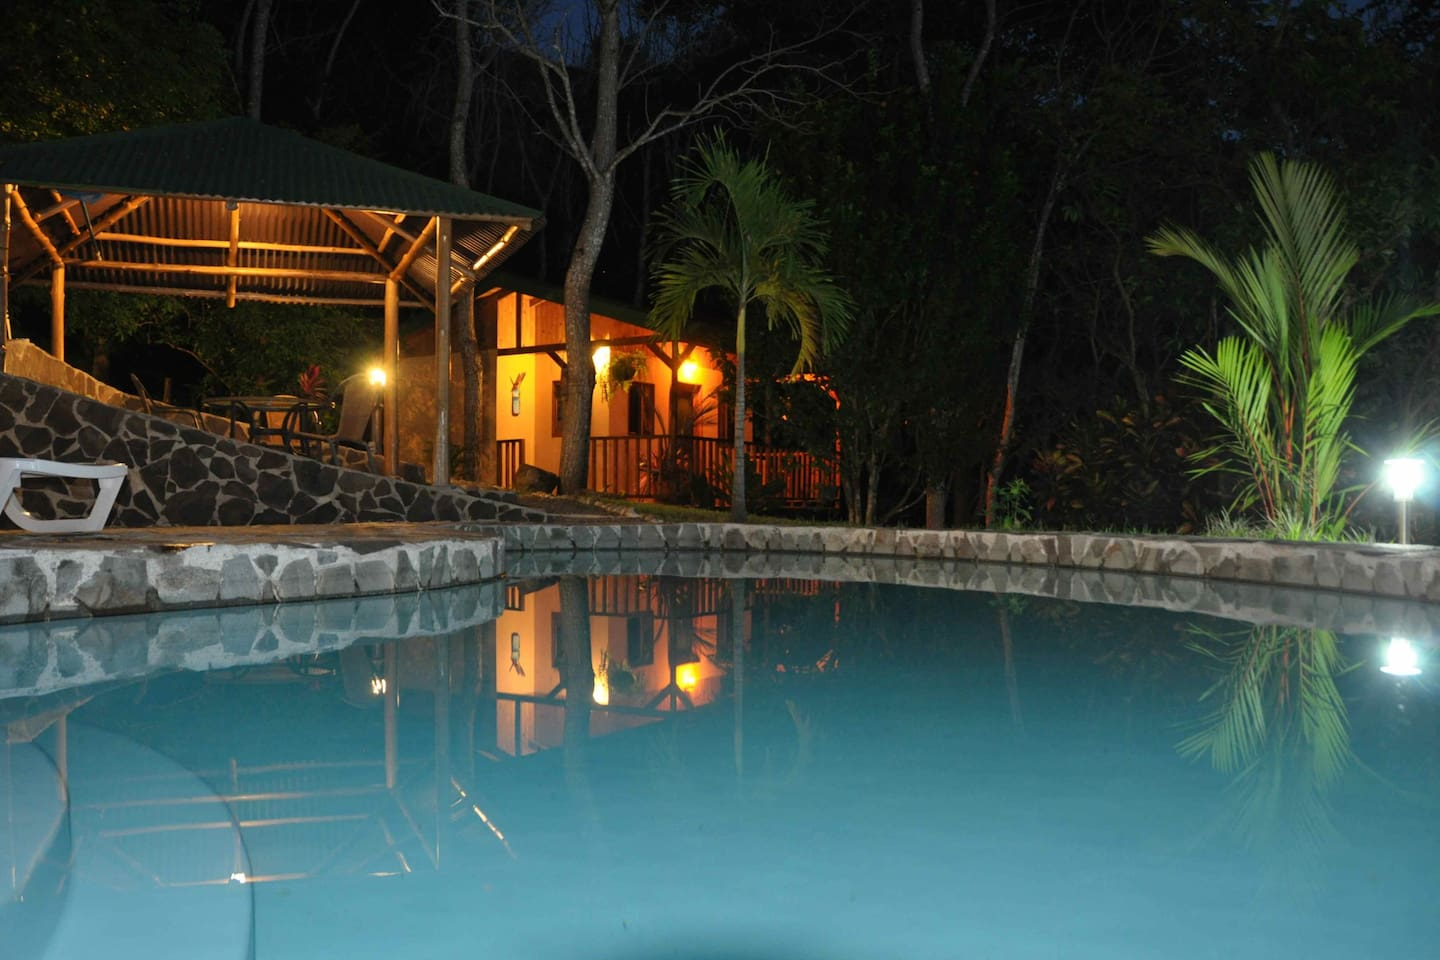 Casita Carambola from the swimming pool at night